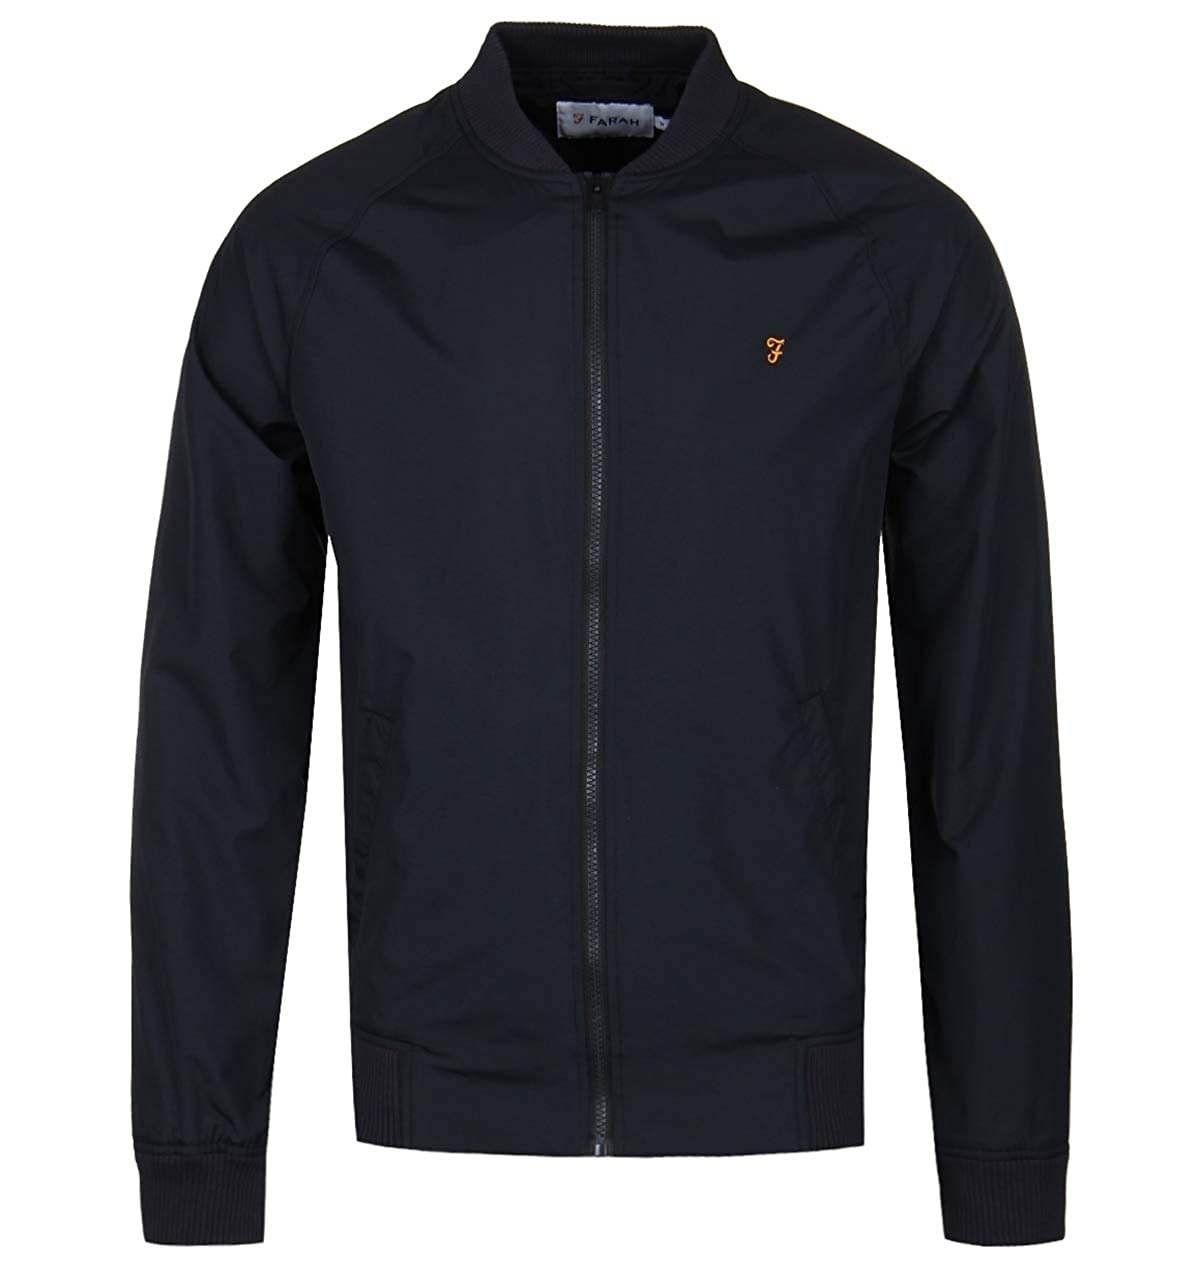 FARAH Richards Mens Bomber Jacket